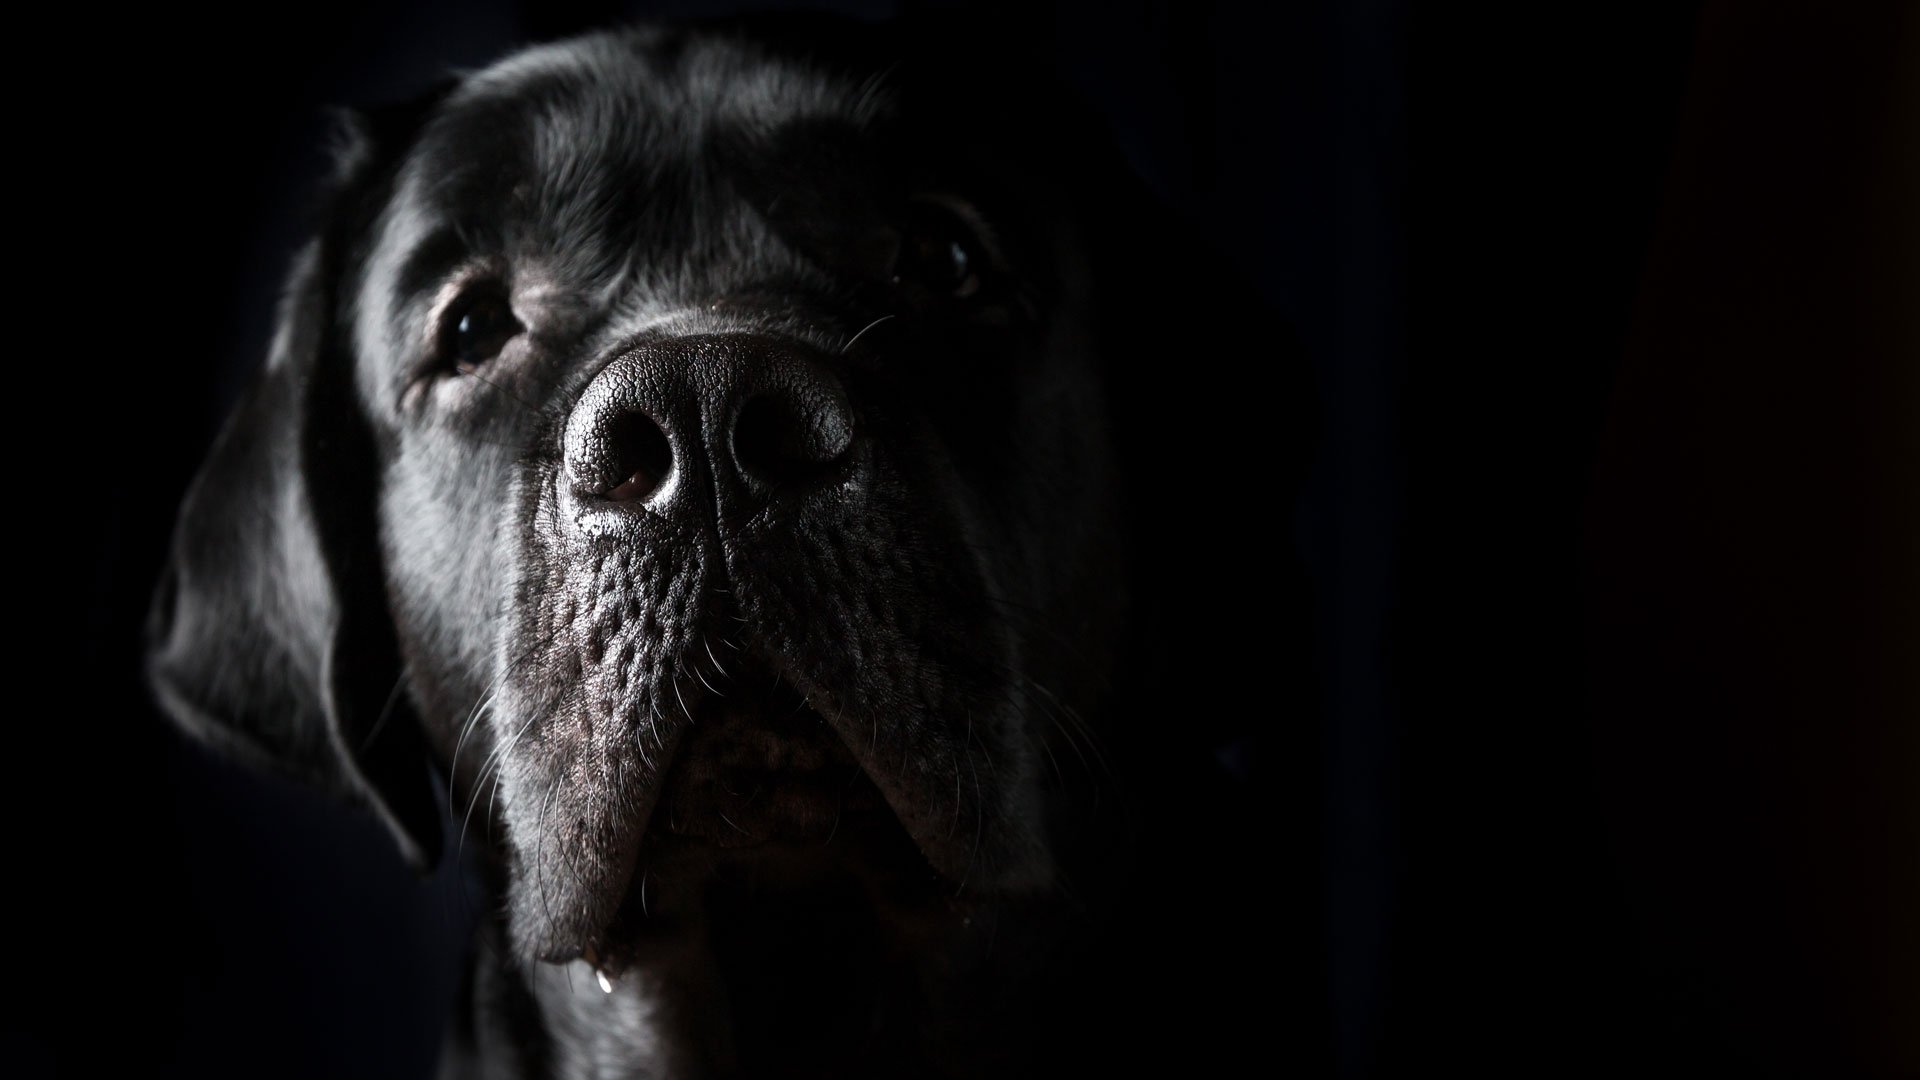 Closeup portrait of black Labrador dog on black background - Image